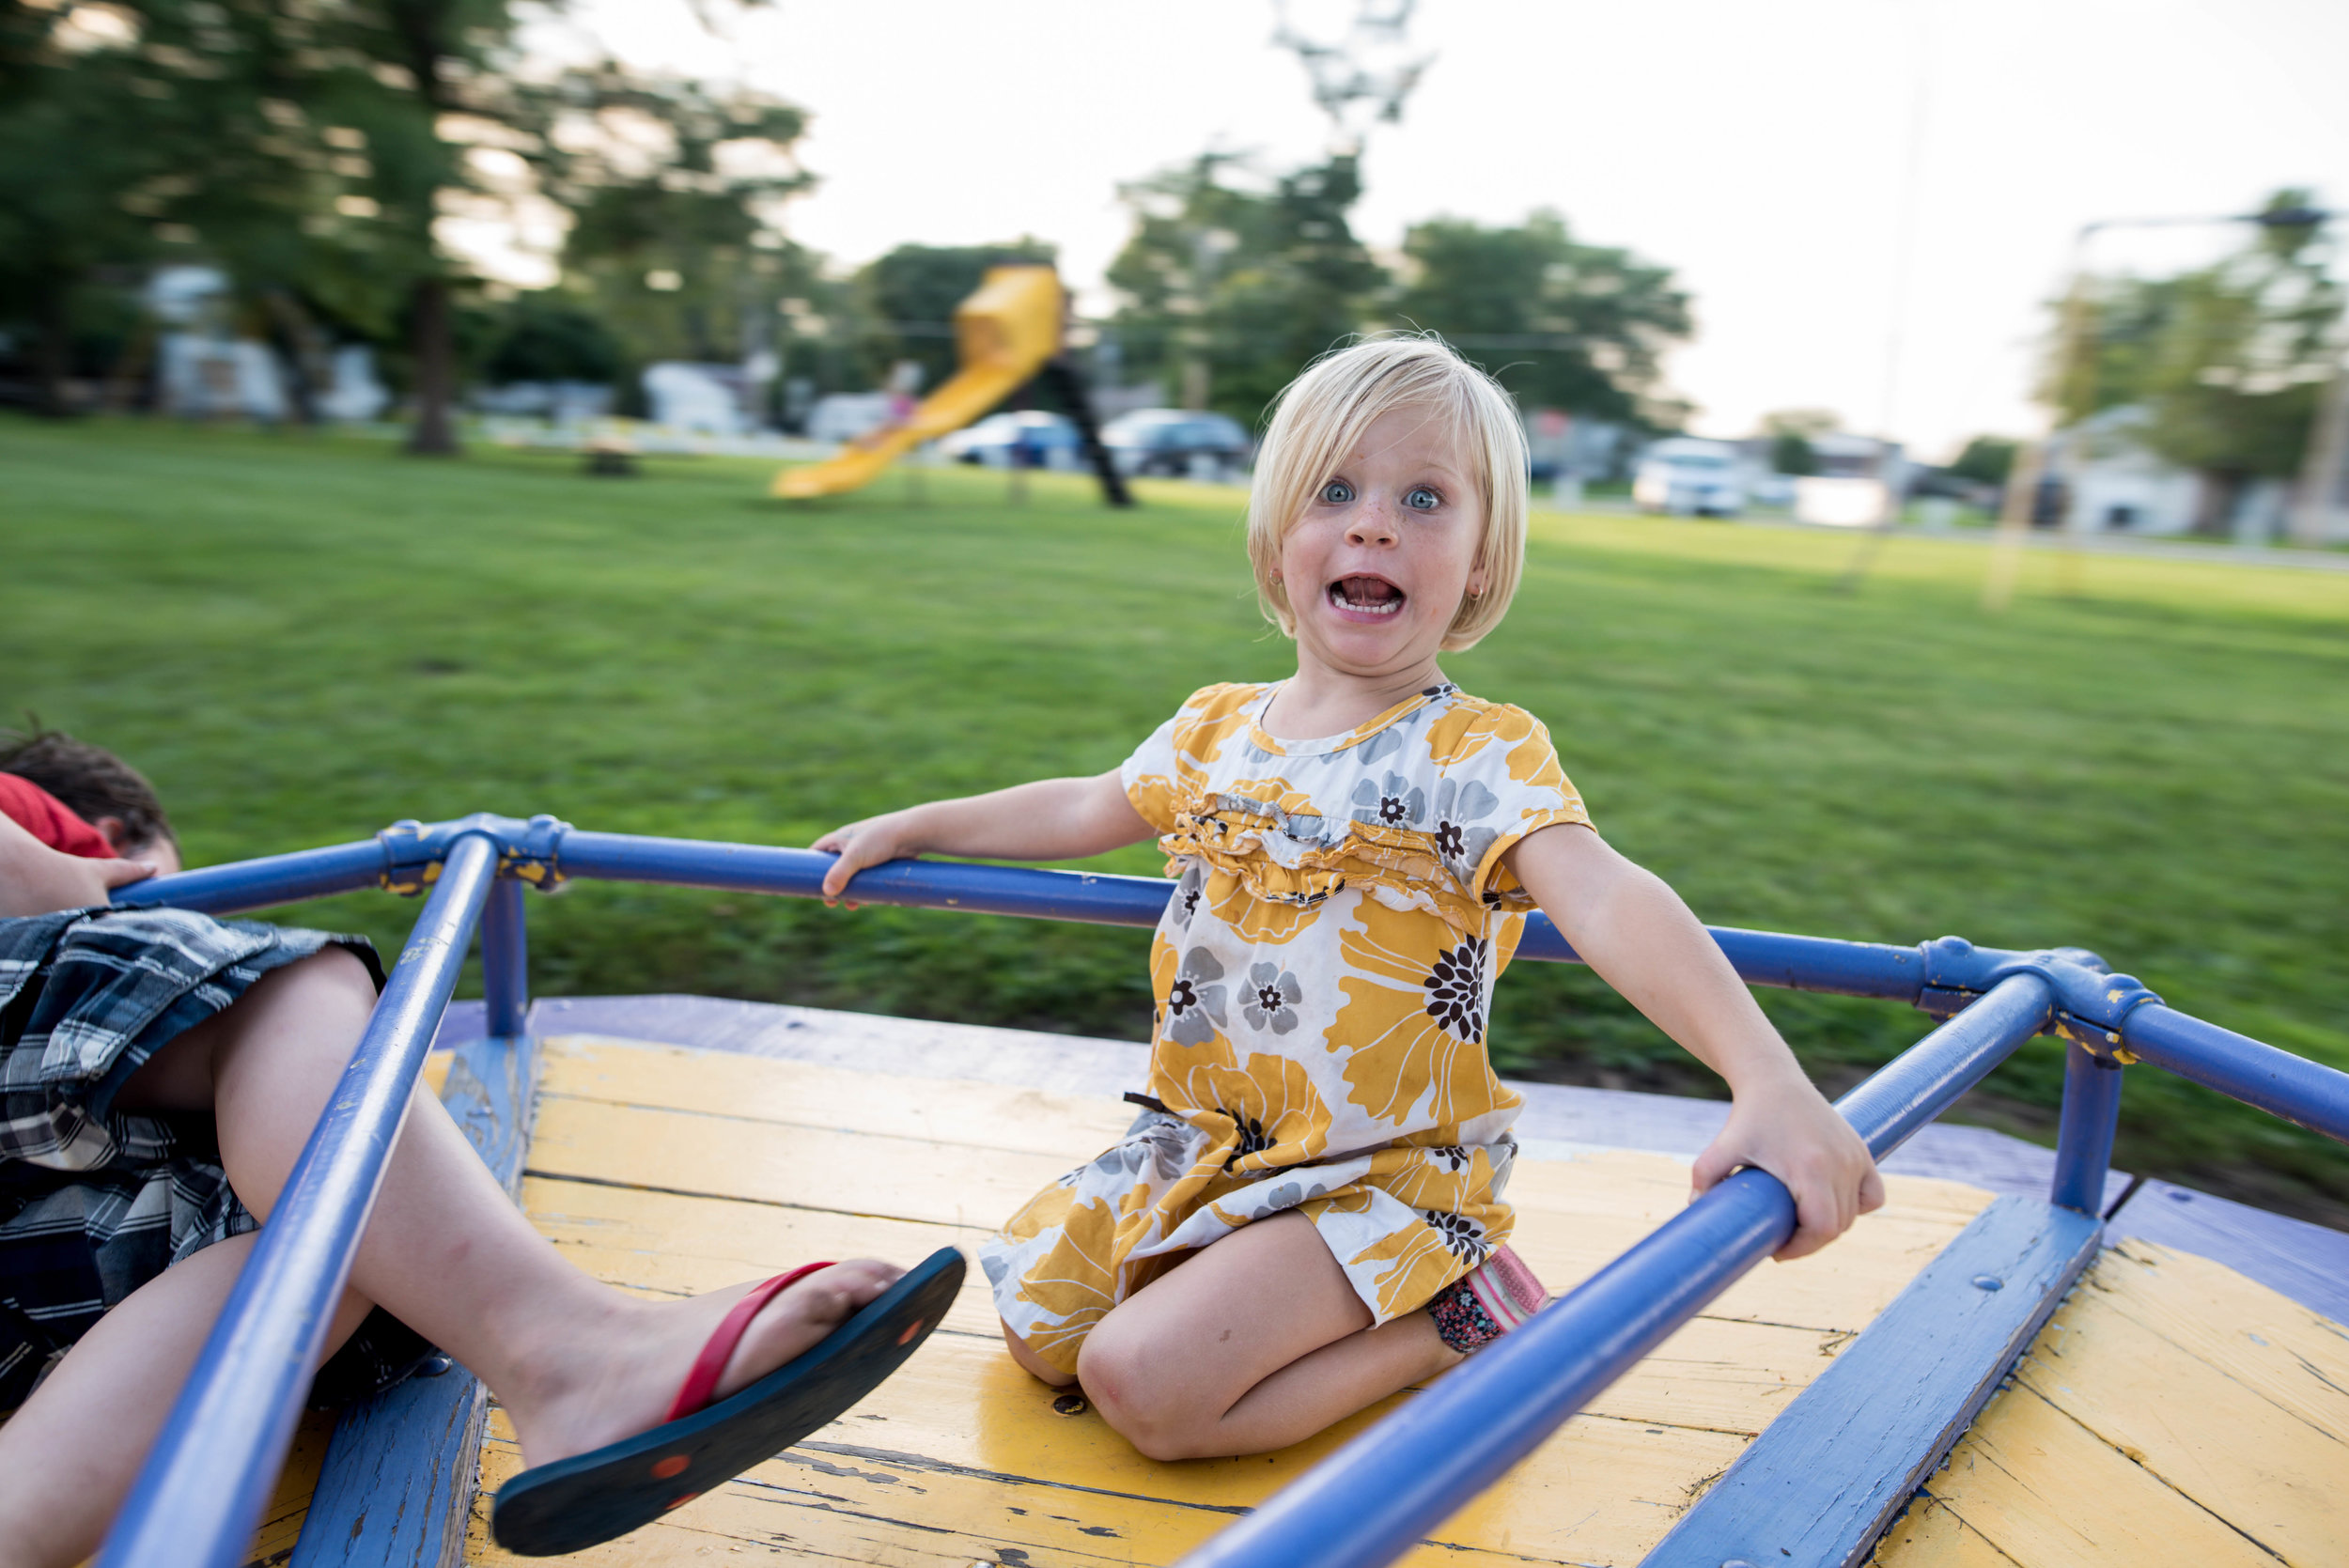 child on merry go round at williamsville illinois park